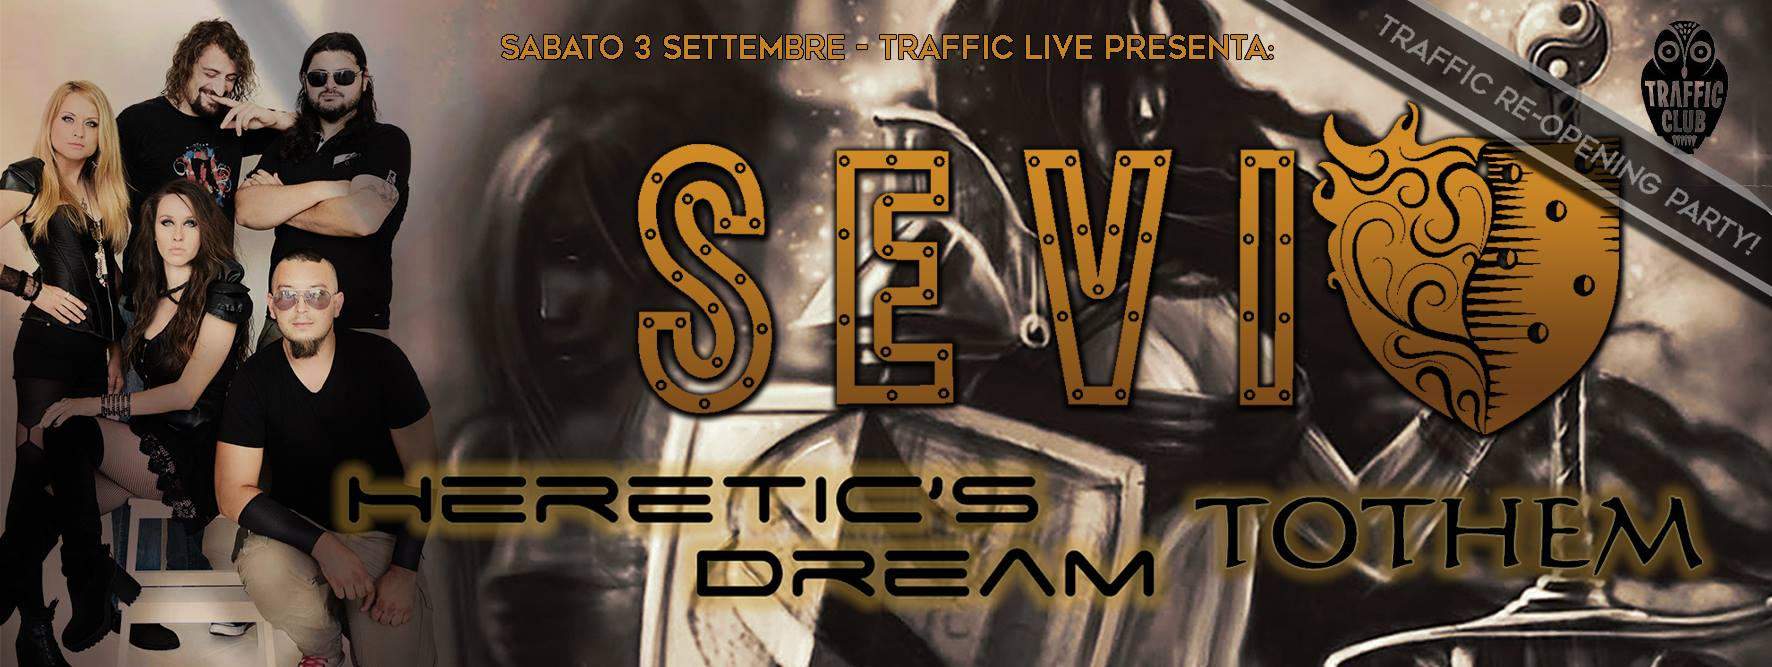 SEVI, Heretic's Dream, Tothem at Traffic Live (re-opening party) @ Traffic Live  | Roma | Lazio | Italia